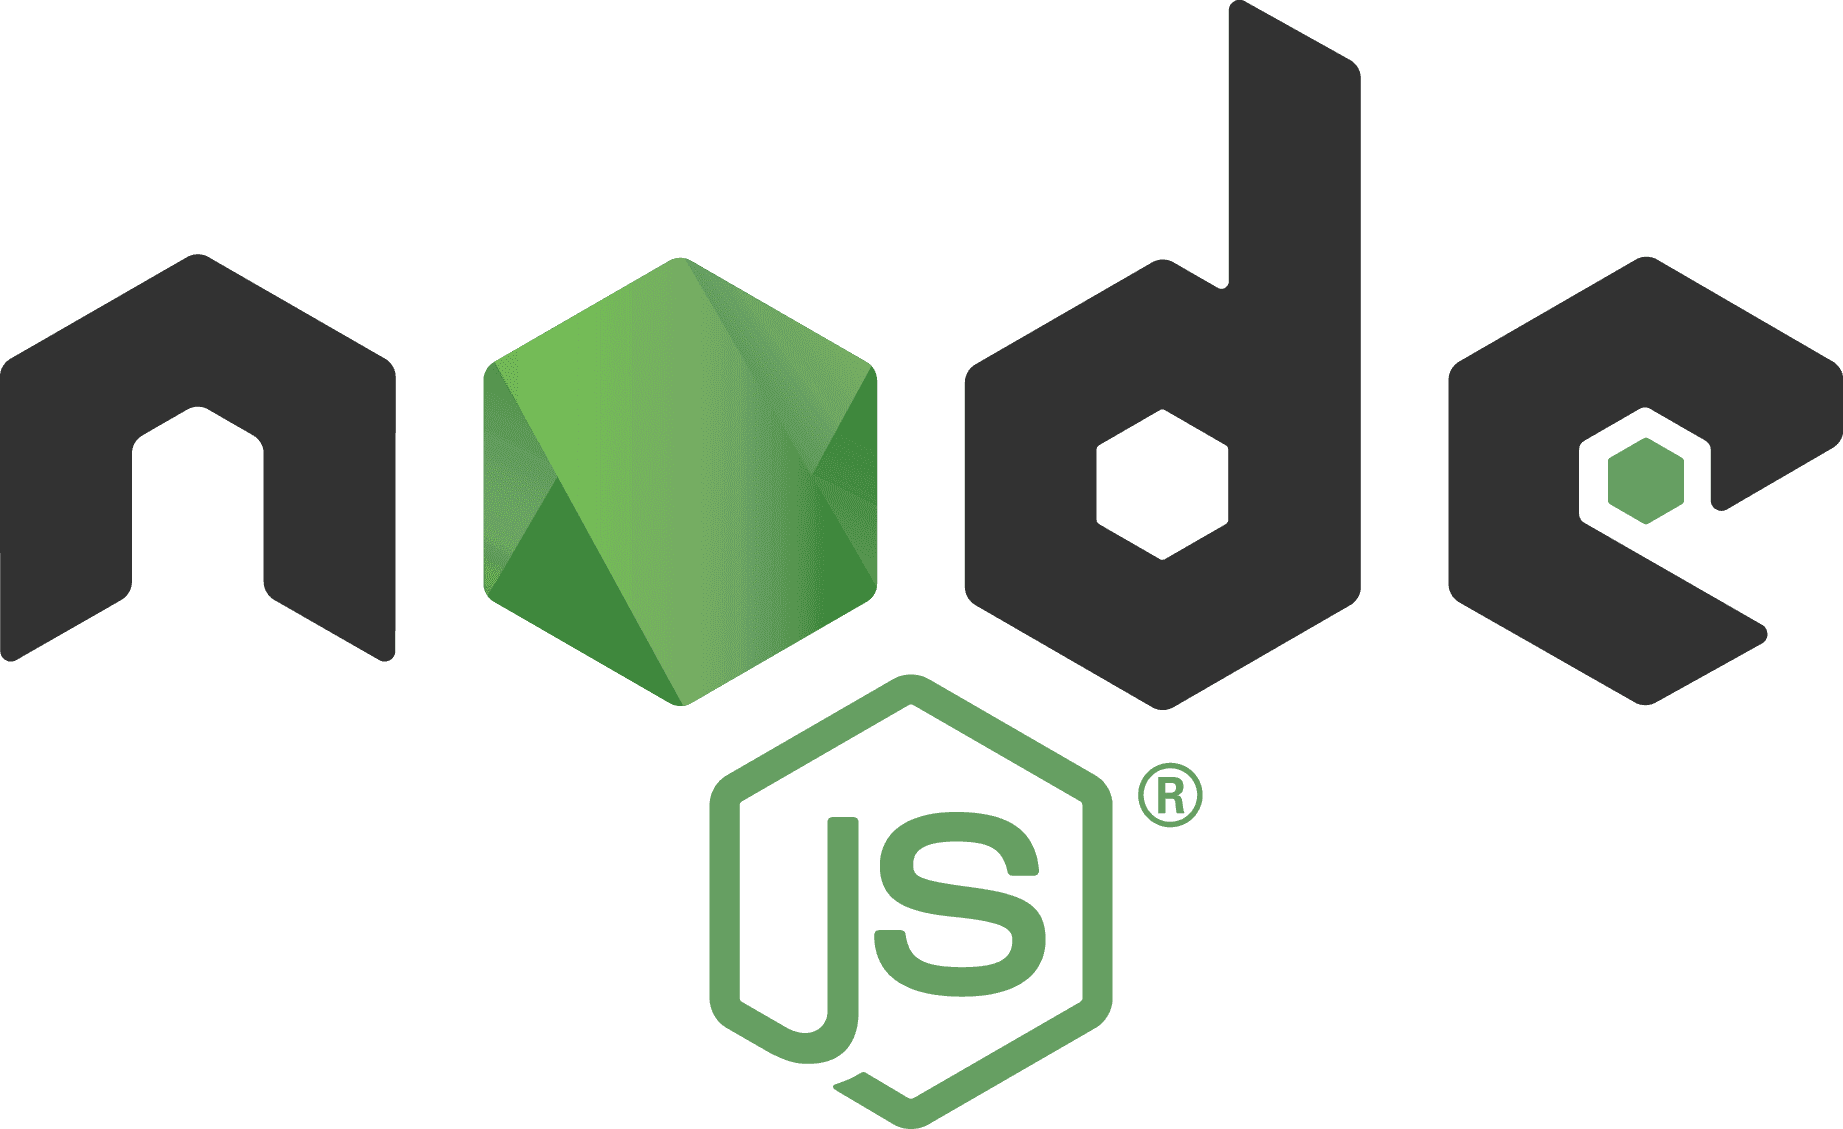 Node.js is now available.